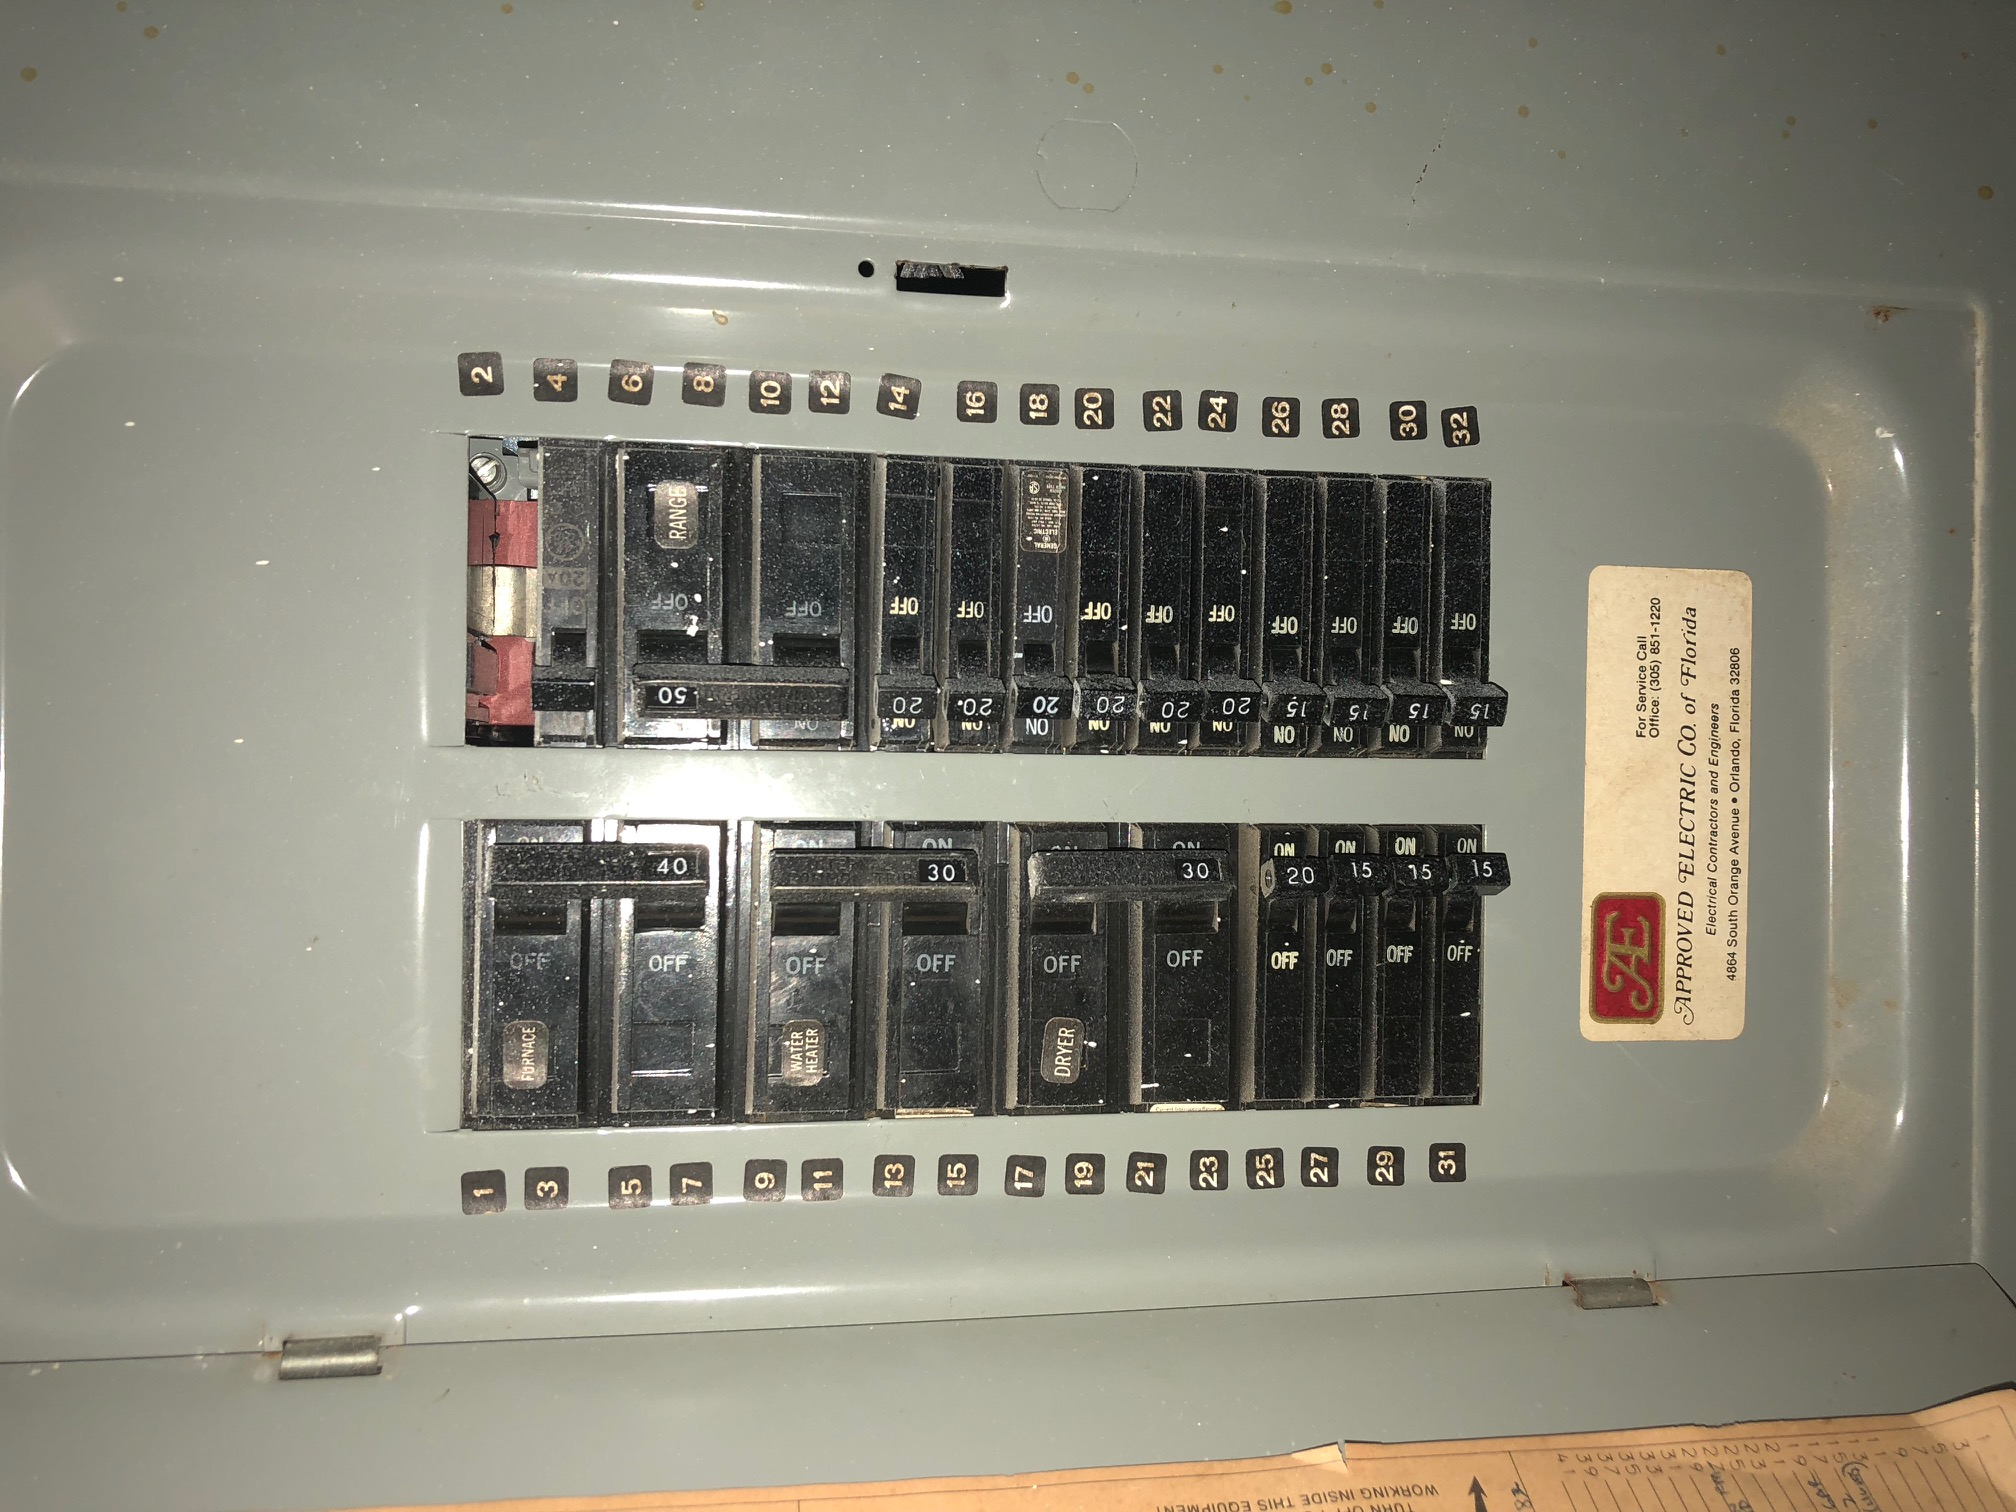 Question Regarding Panel Internachi Inspection Forum 20 Amp Outlet On 15 Circuit This Page Contains All Information About